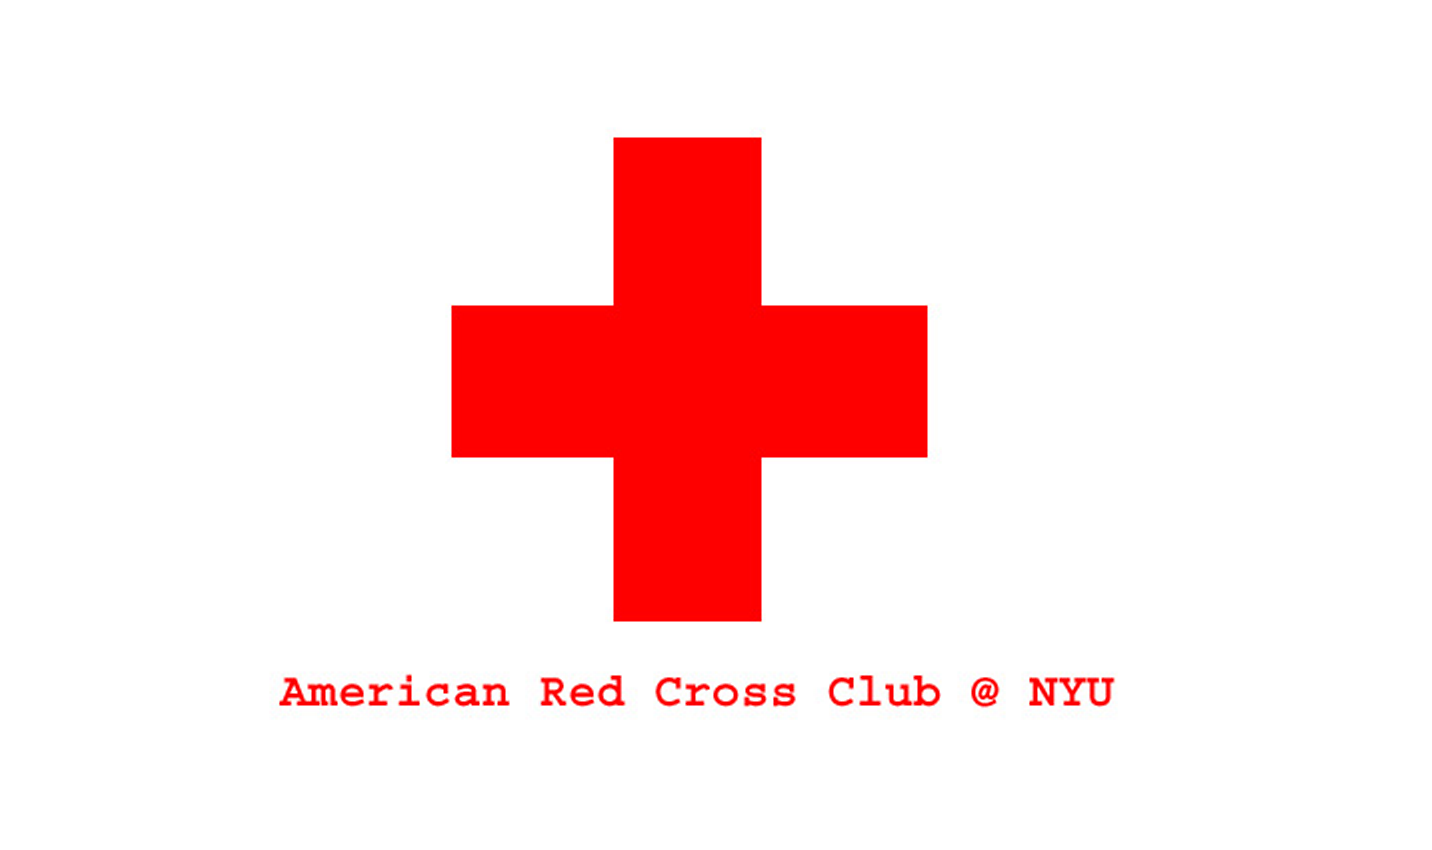 NYU Red Cross moves to give back